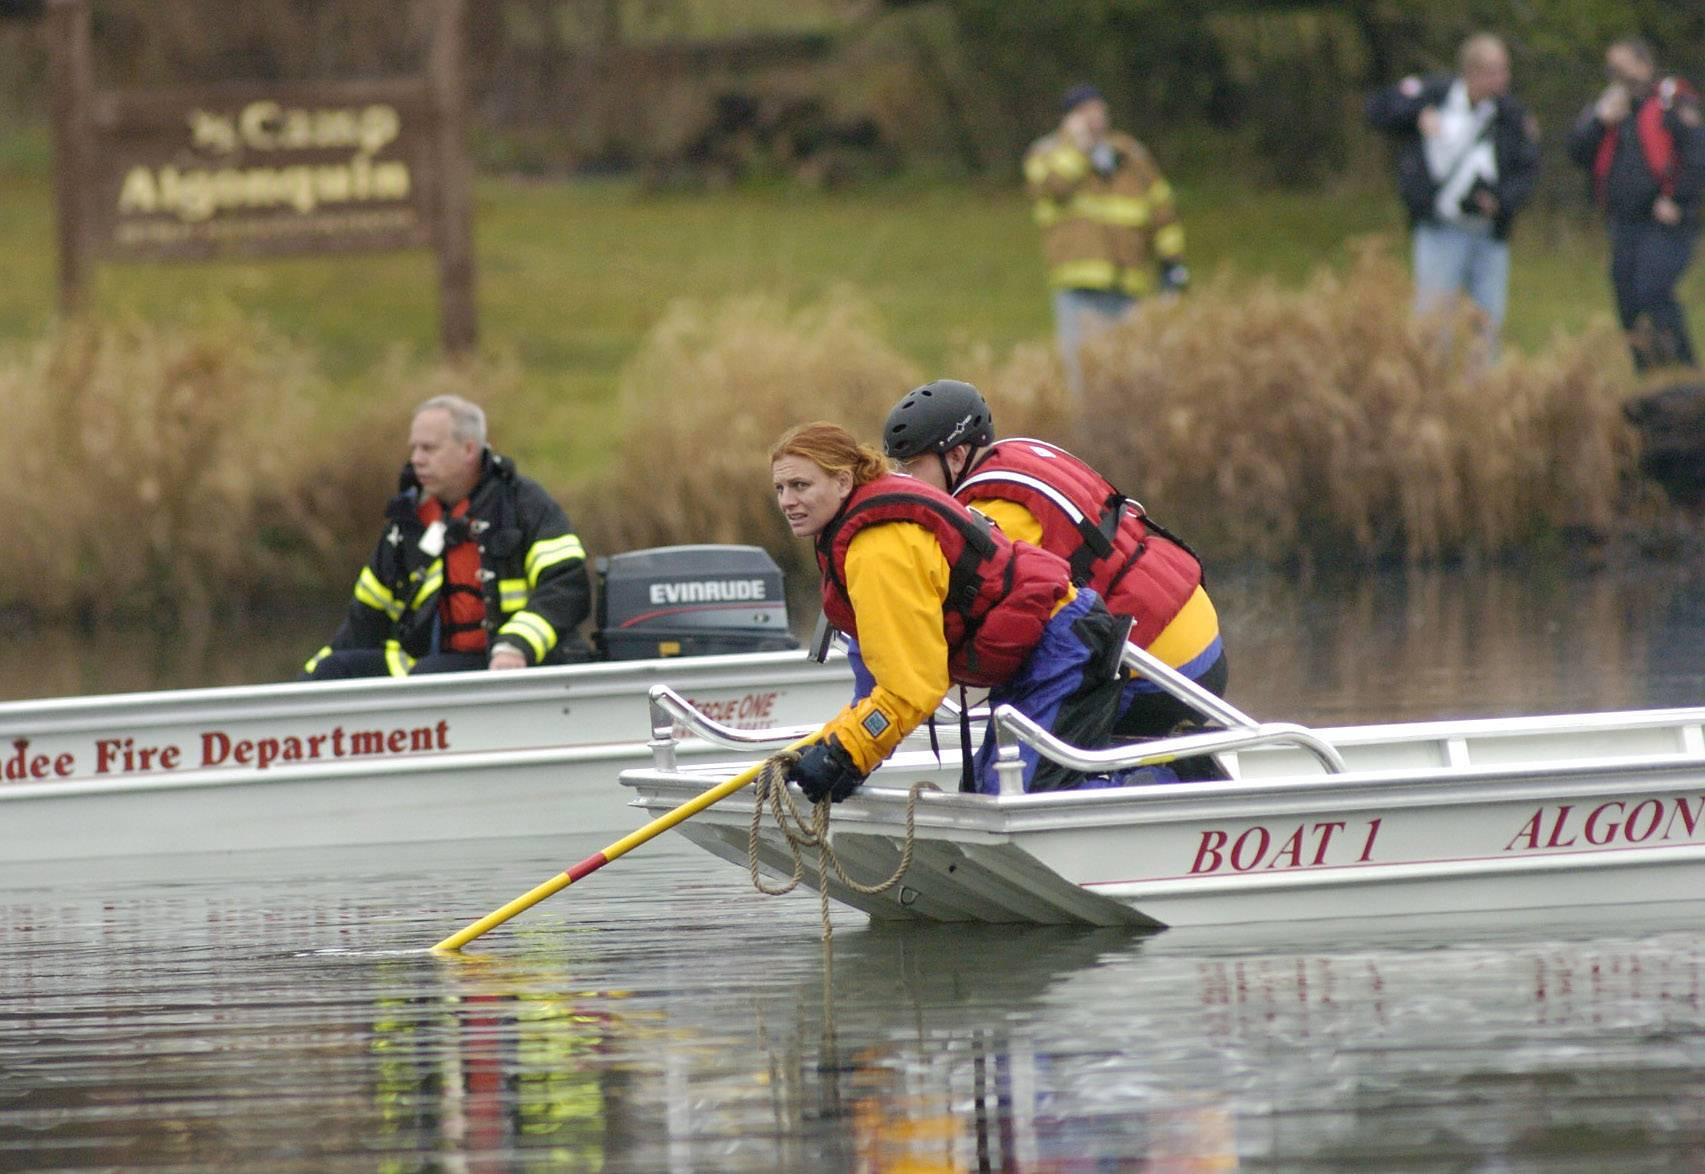 History of drownings in the Fox River